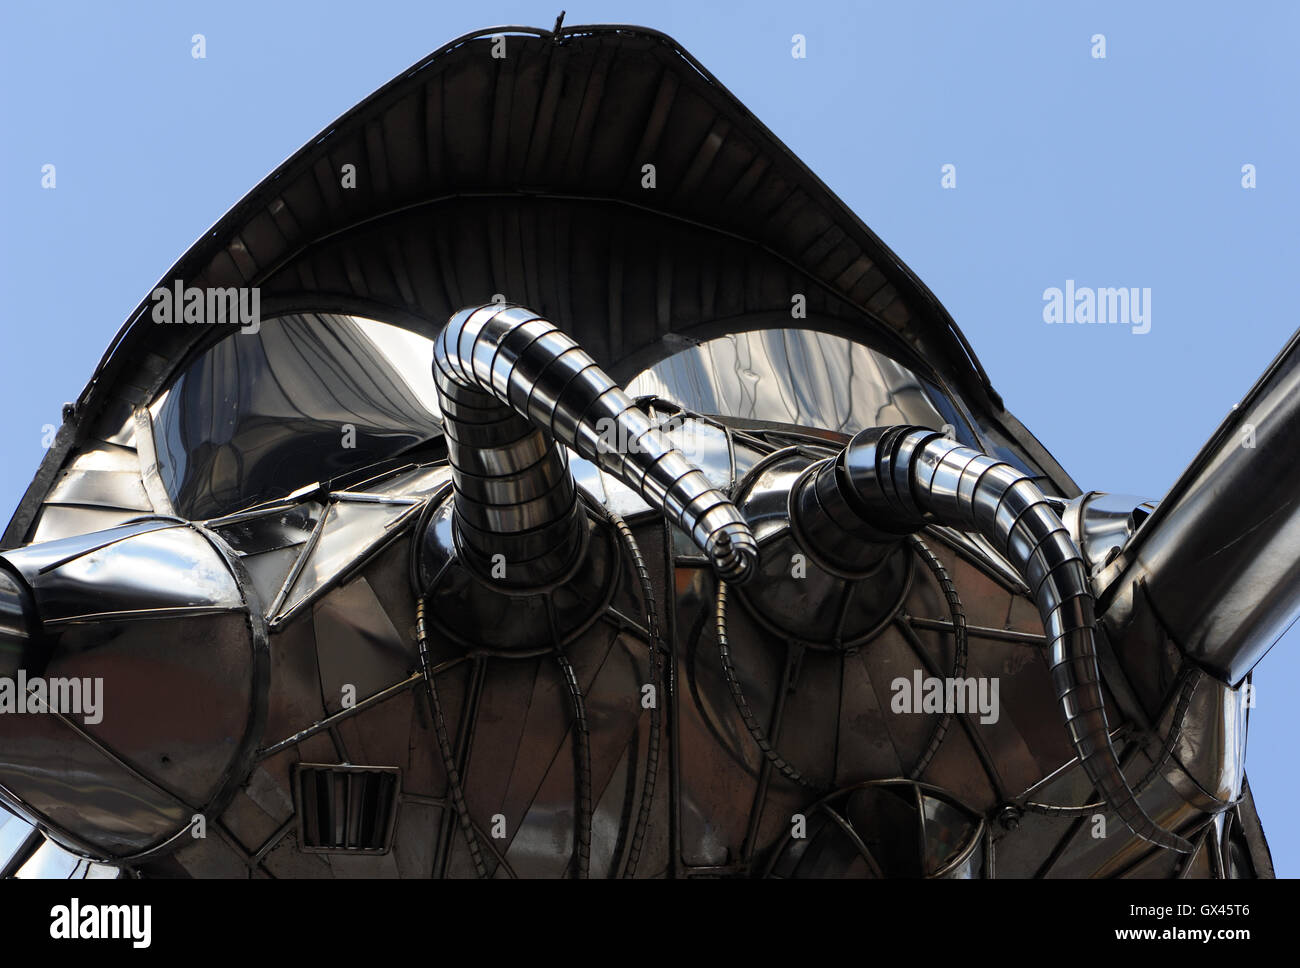 The Woking Martian celebrating Woking as the 'birthplace of science fiction'. - Stock Image